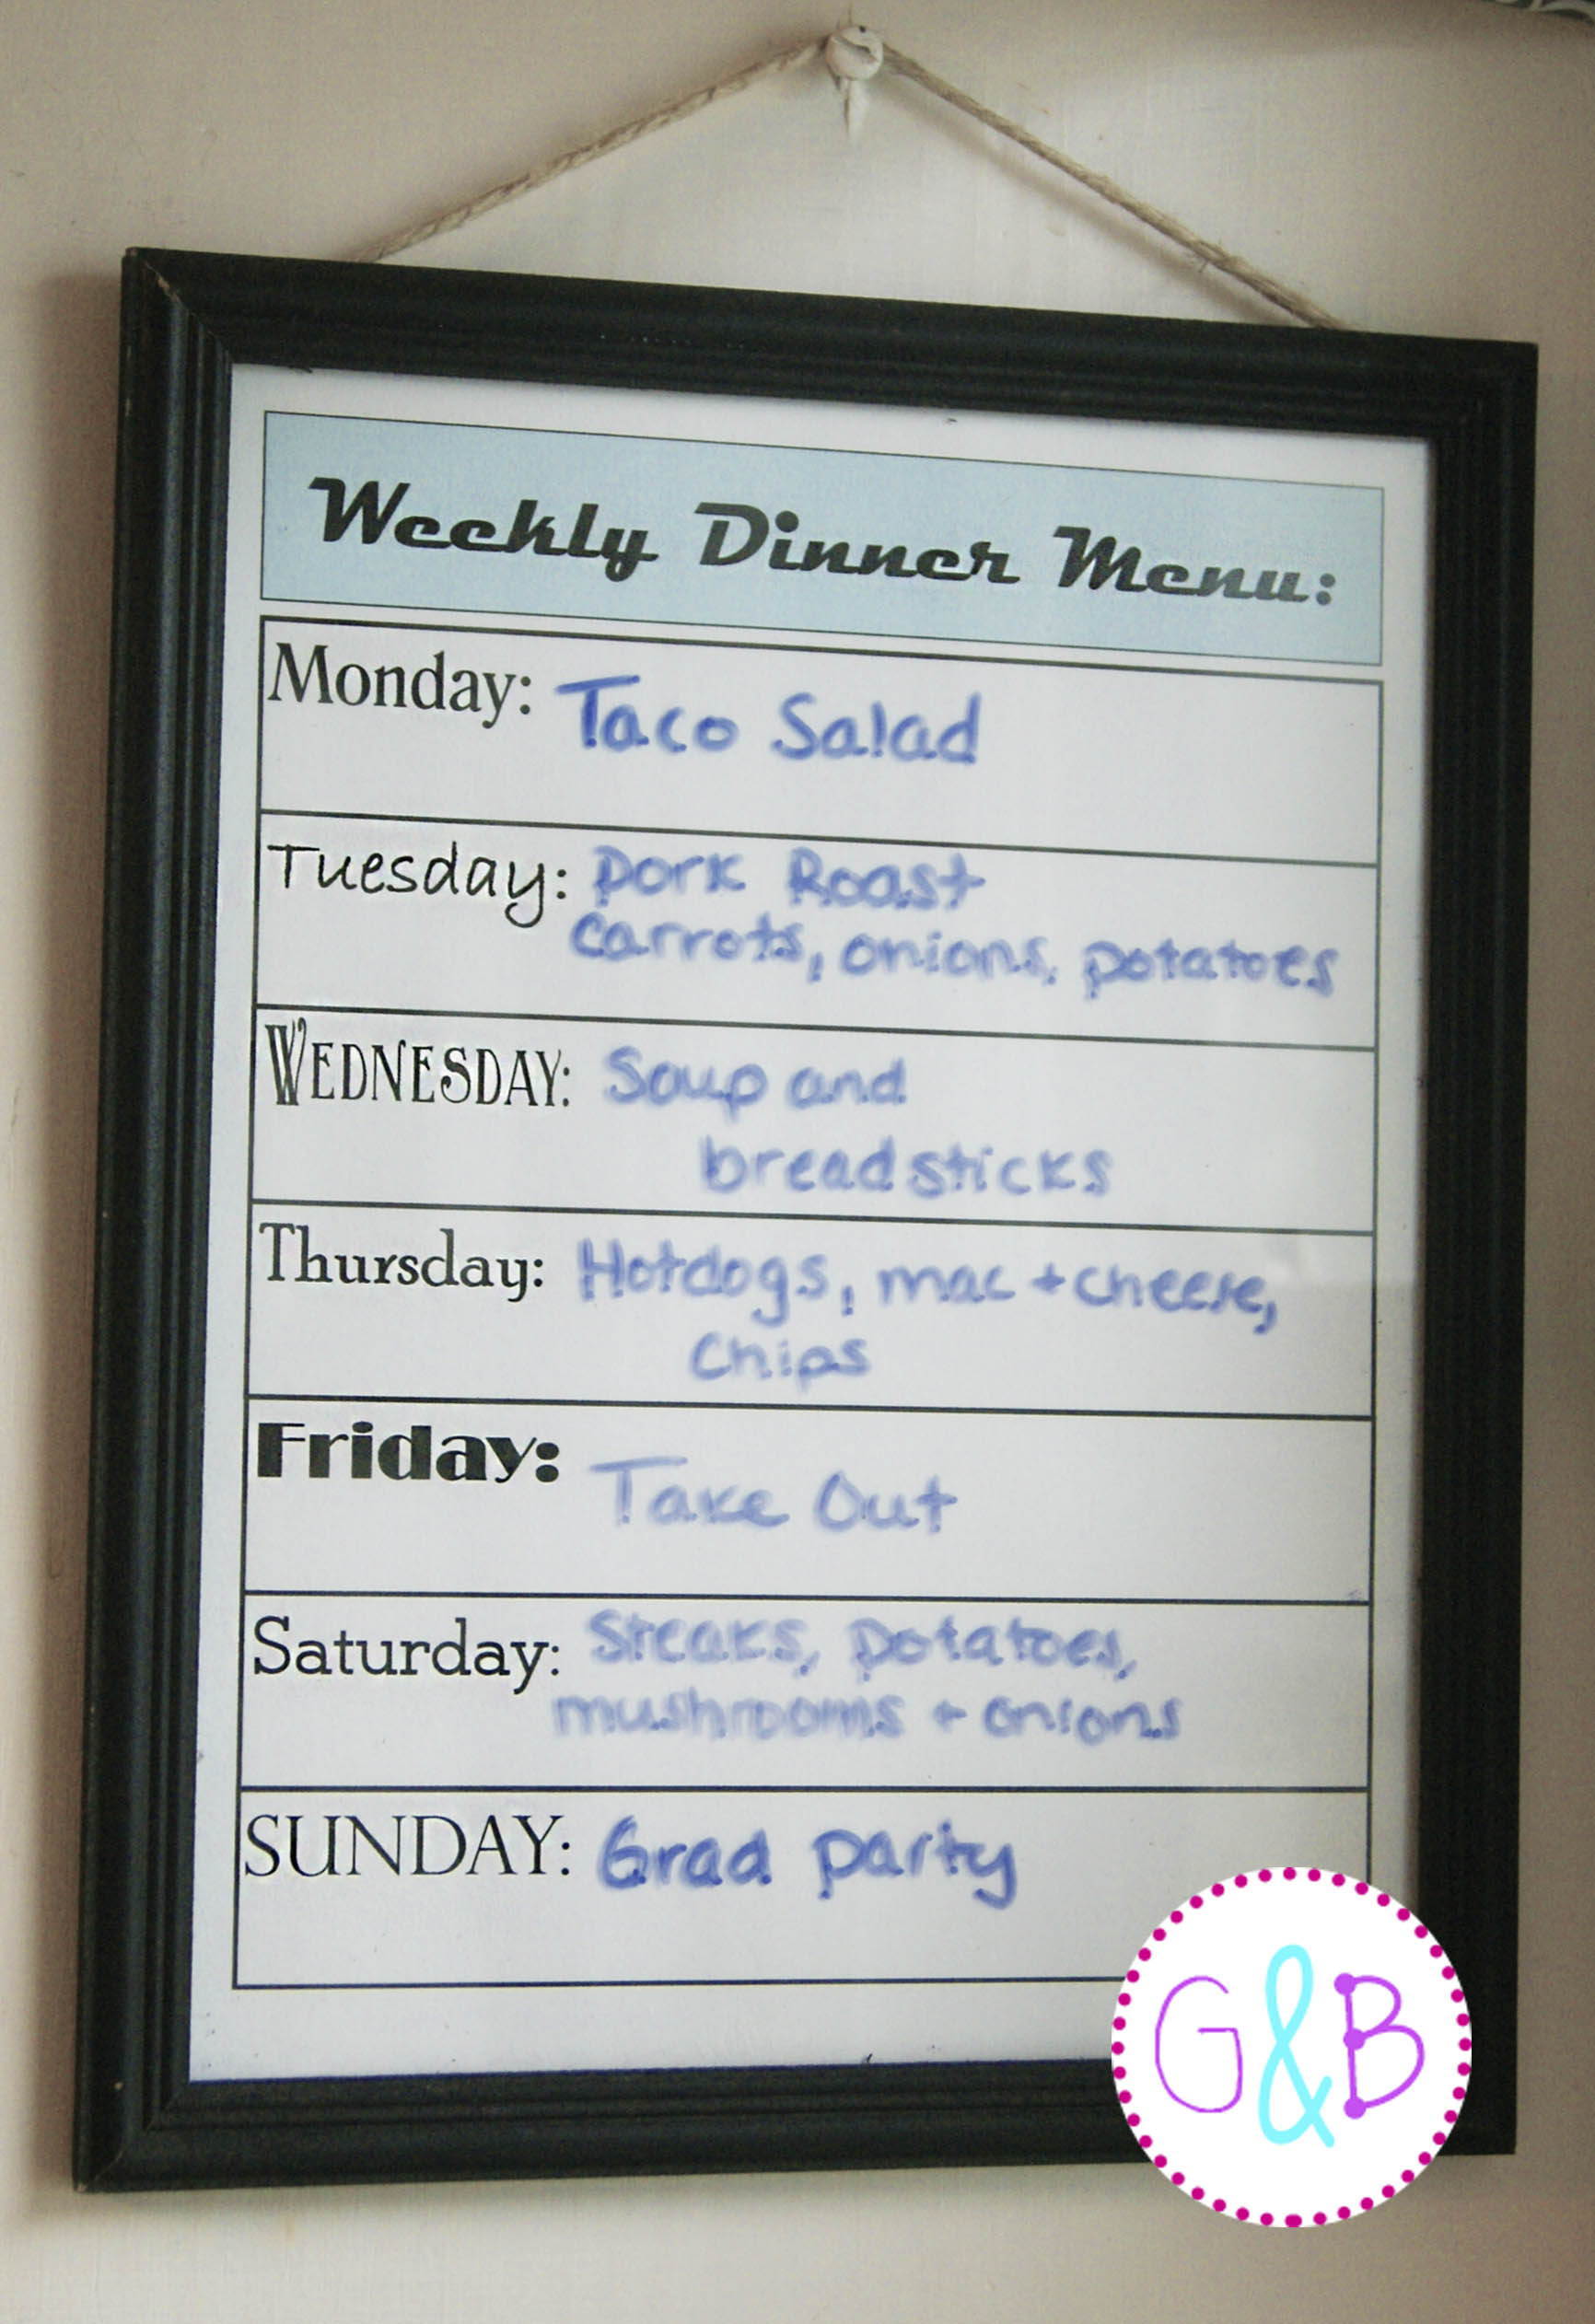 my weekly dinner menu planner made from a dollar tree certificate frame